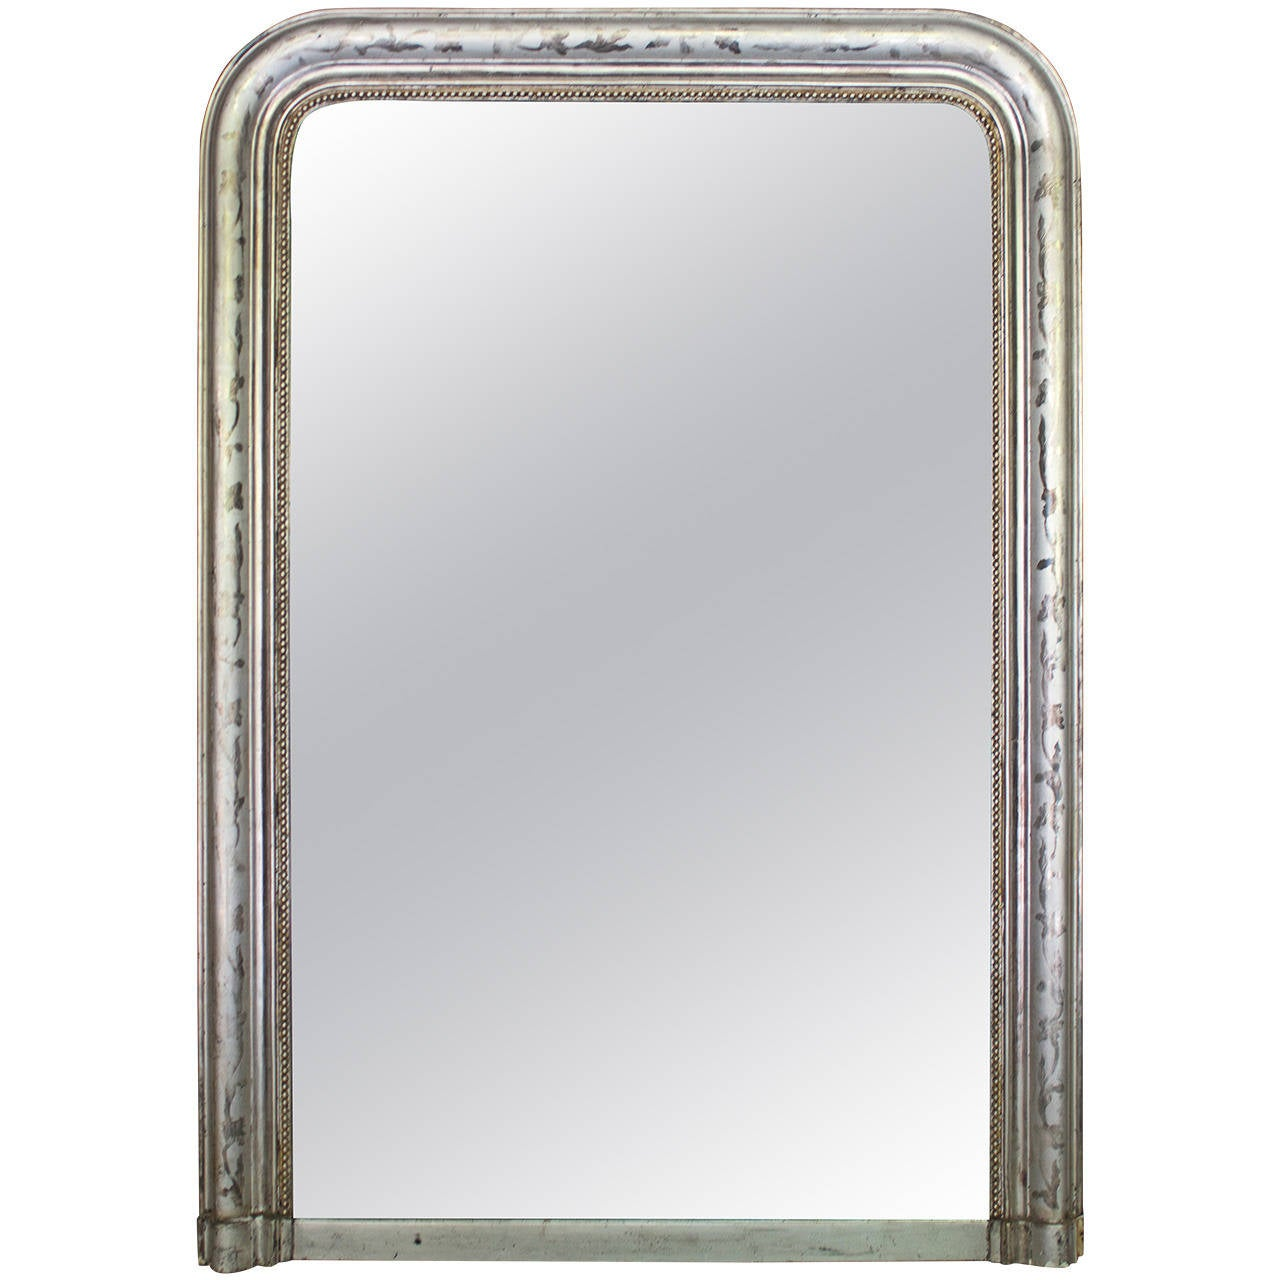 Louis philippe period silver gilt mantel mirror at 1stdibs for Mantel mirrors